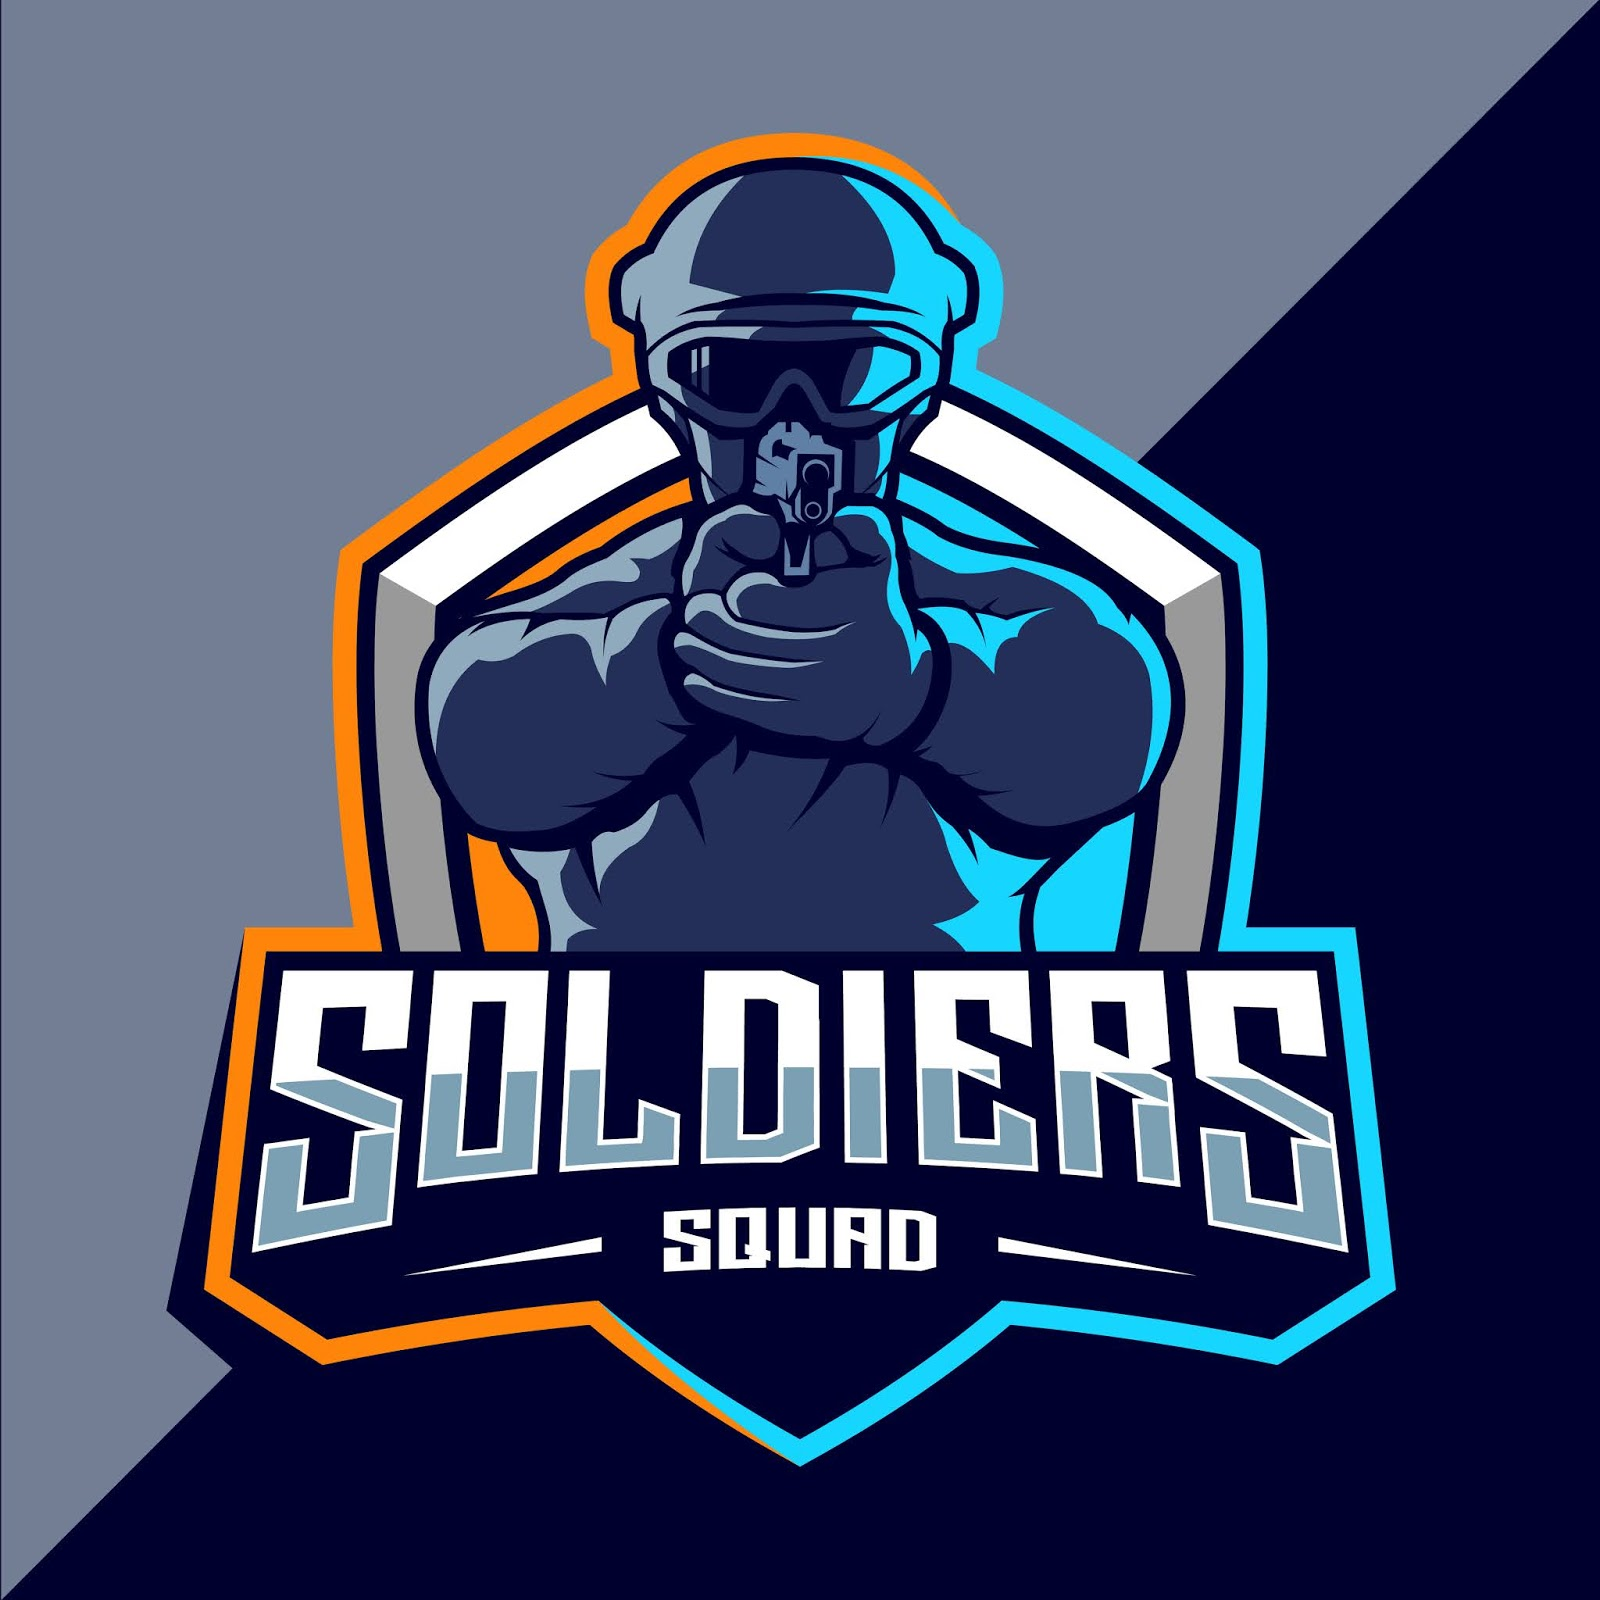 Soldier Mascot Esport Logo Style Free Download Vector CDR, AI, EPS and PNG Formats